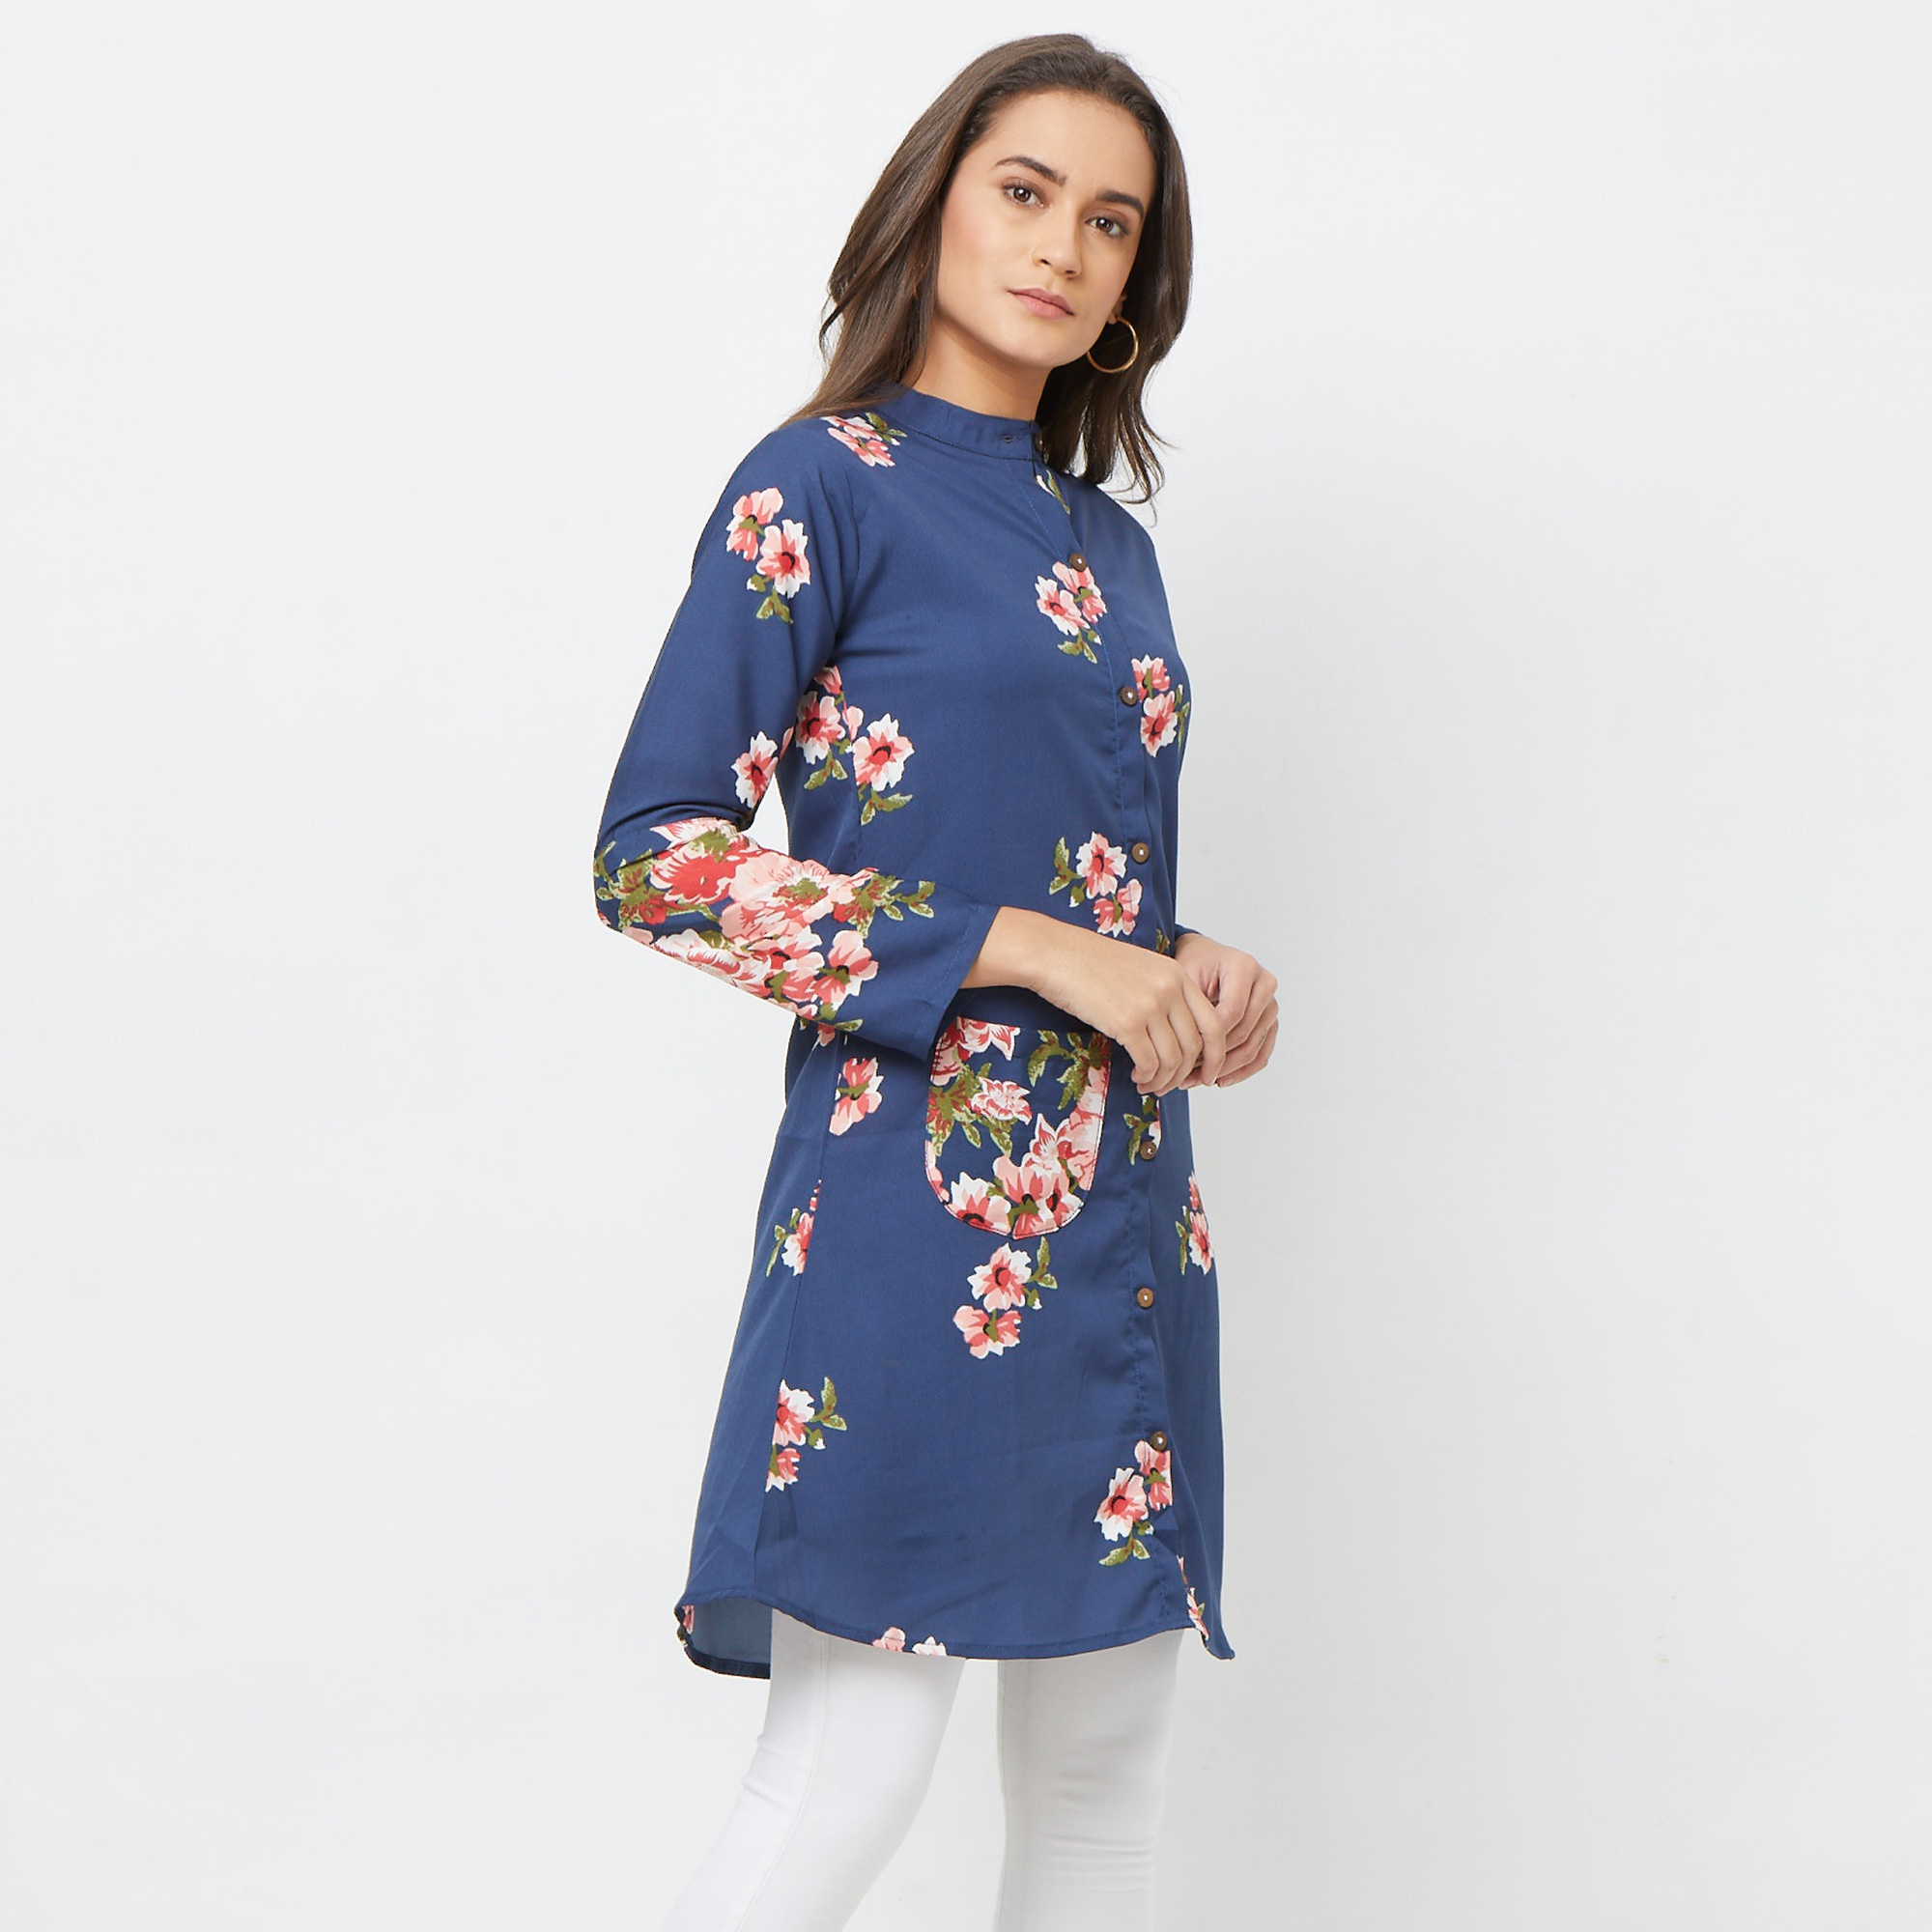 Pleasant Navy Blue Colored Casual Printed Crepe Tunic